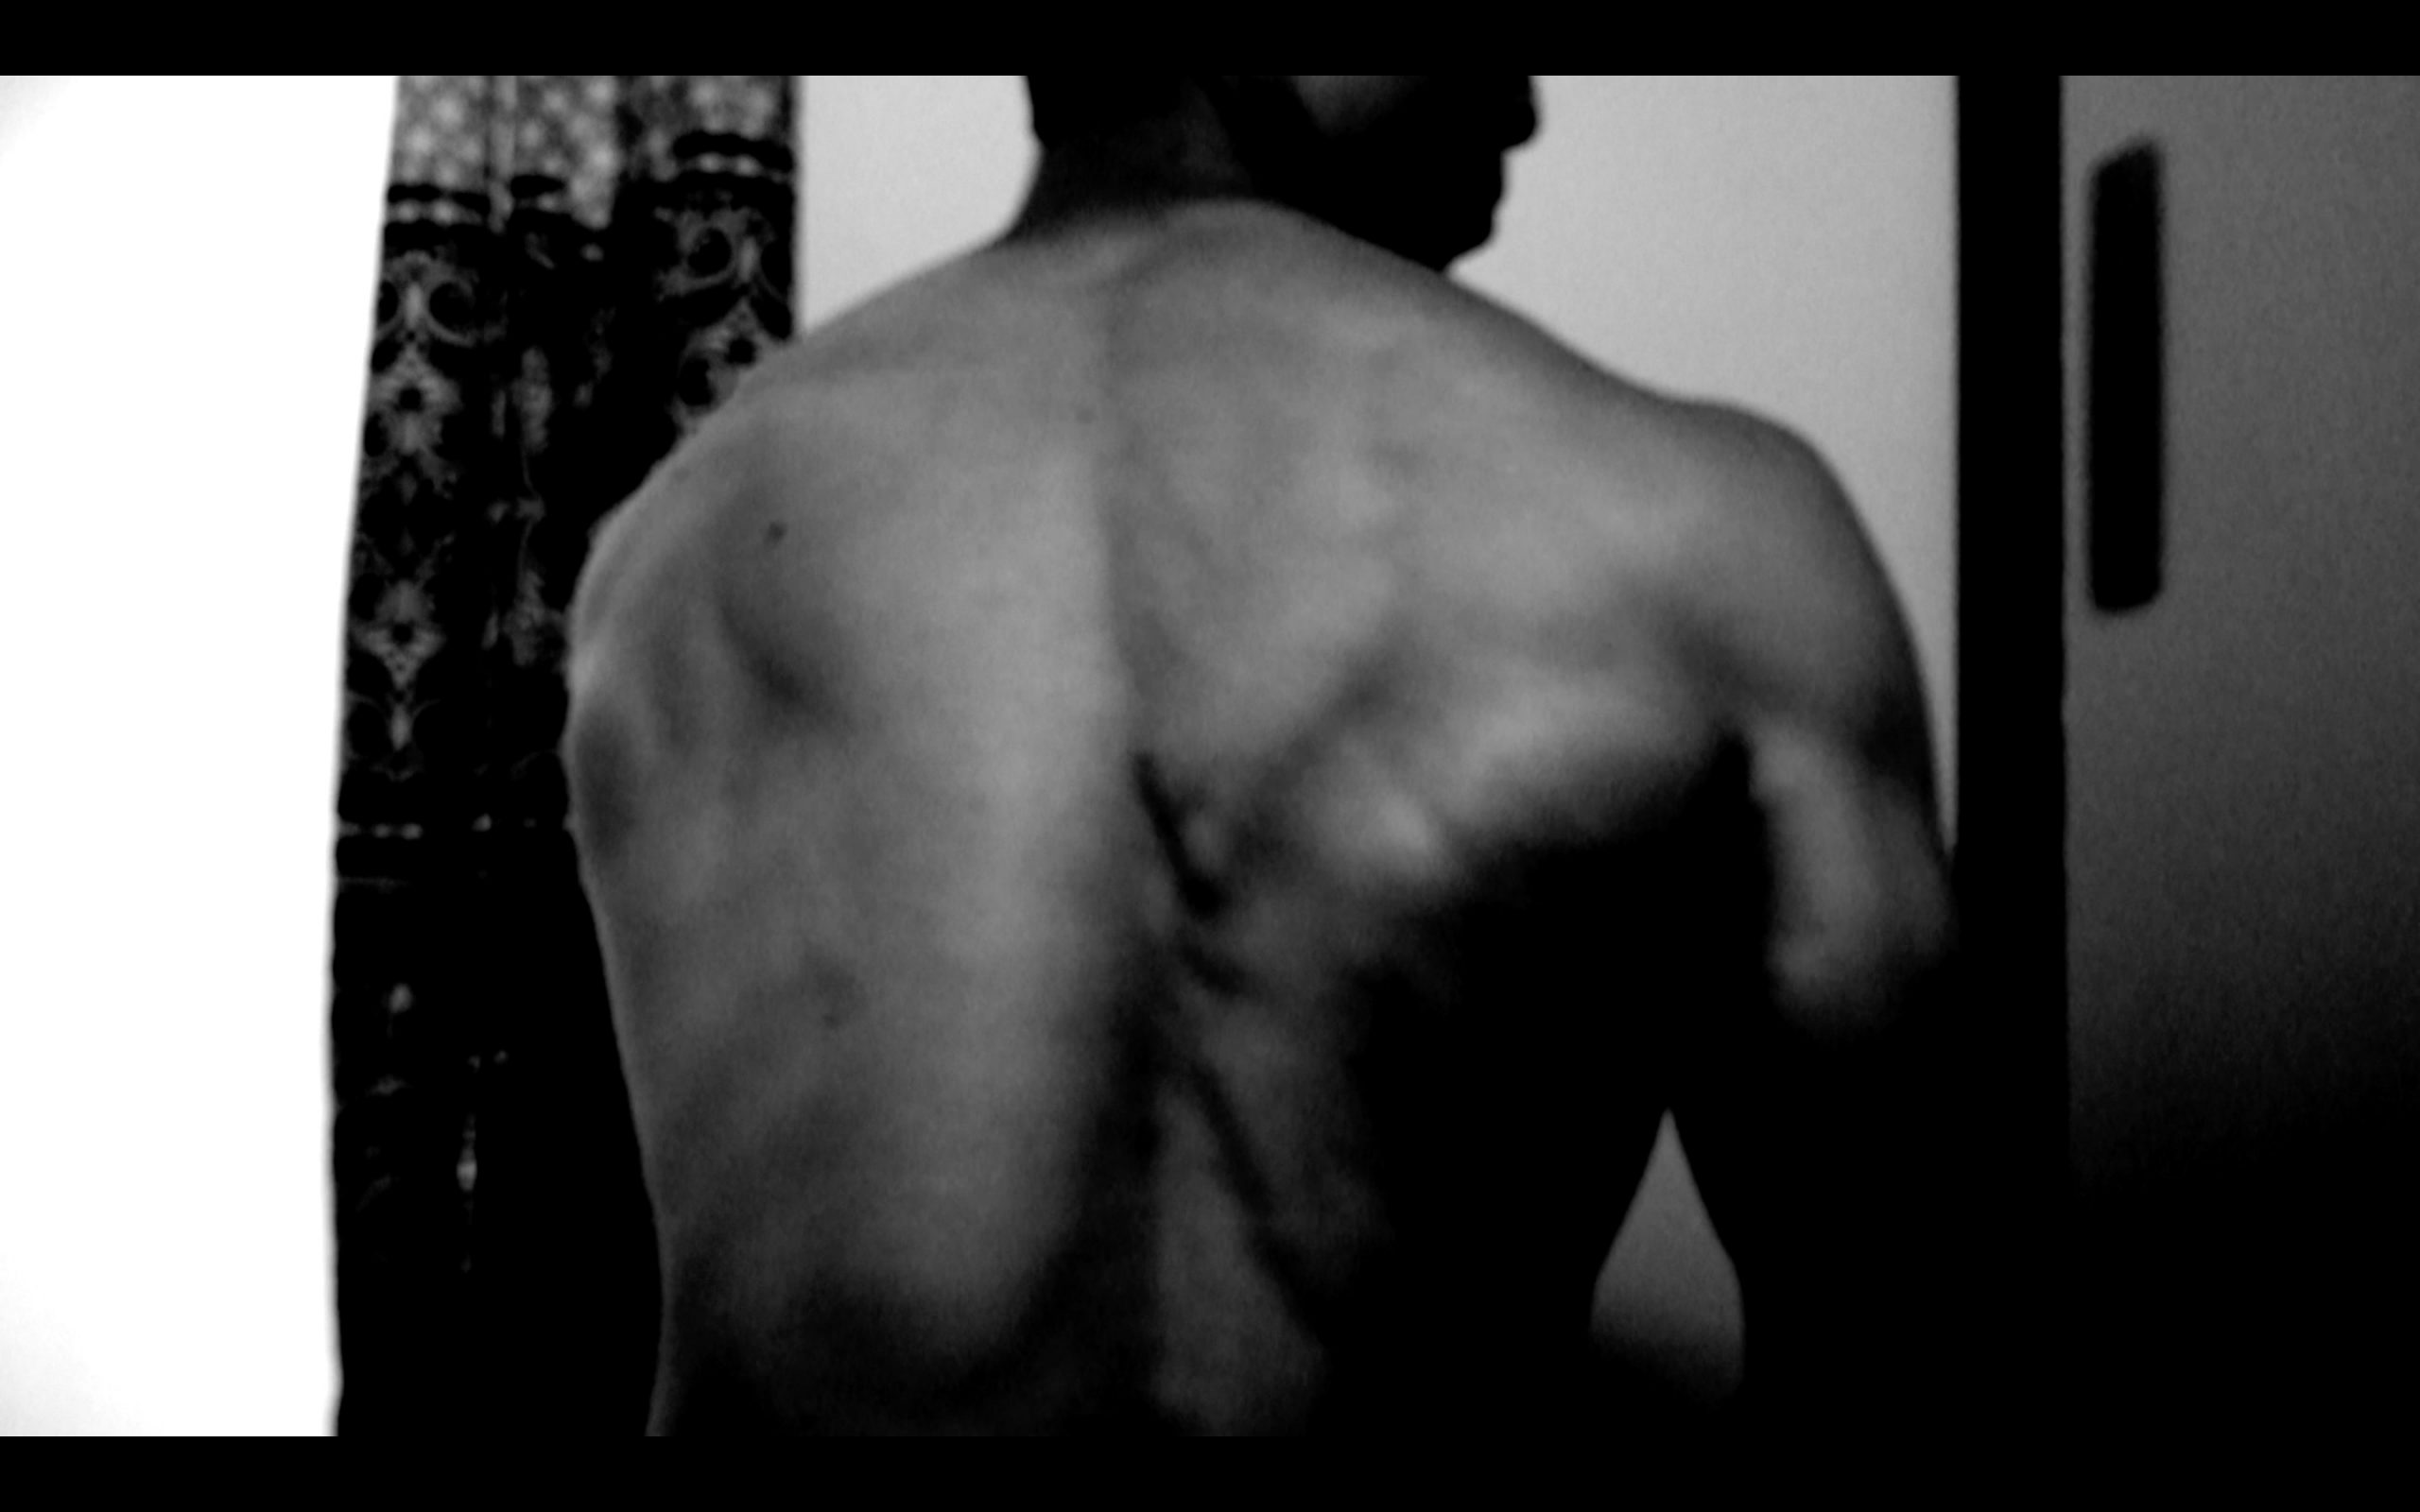 Back muscle flex